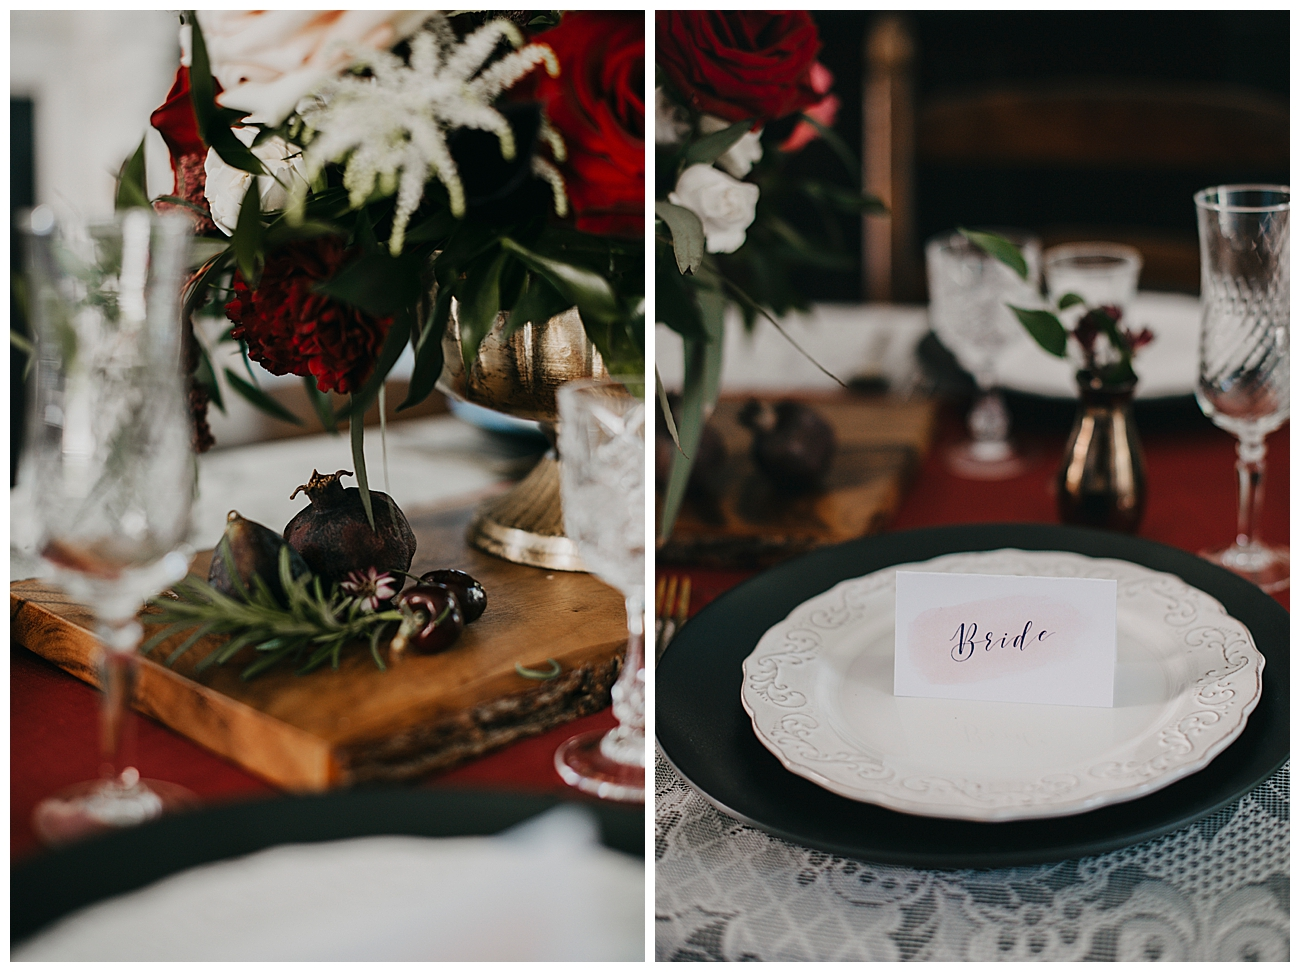 Moody Vintage Wedding Tablescape